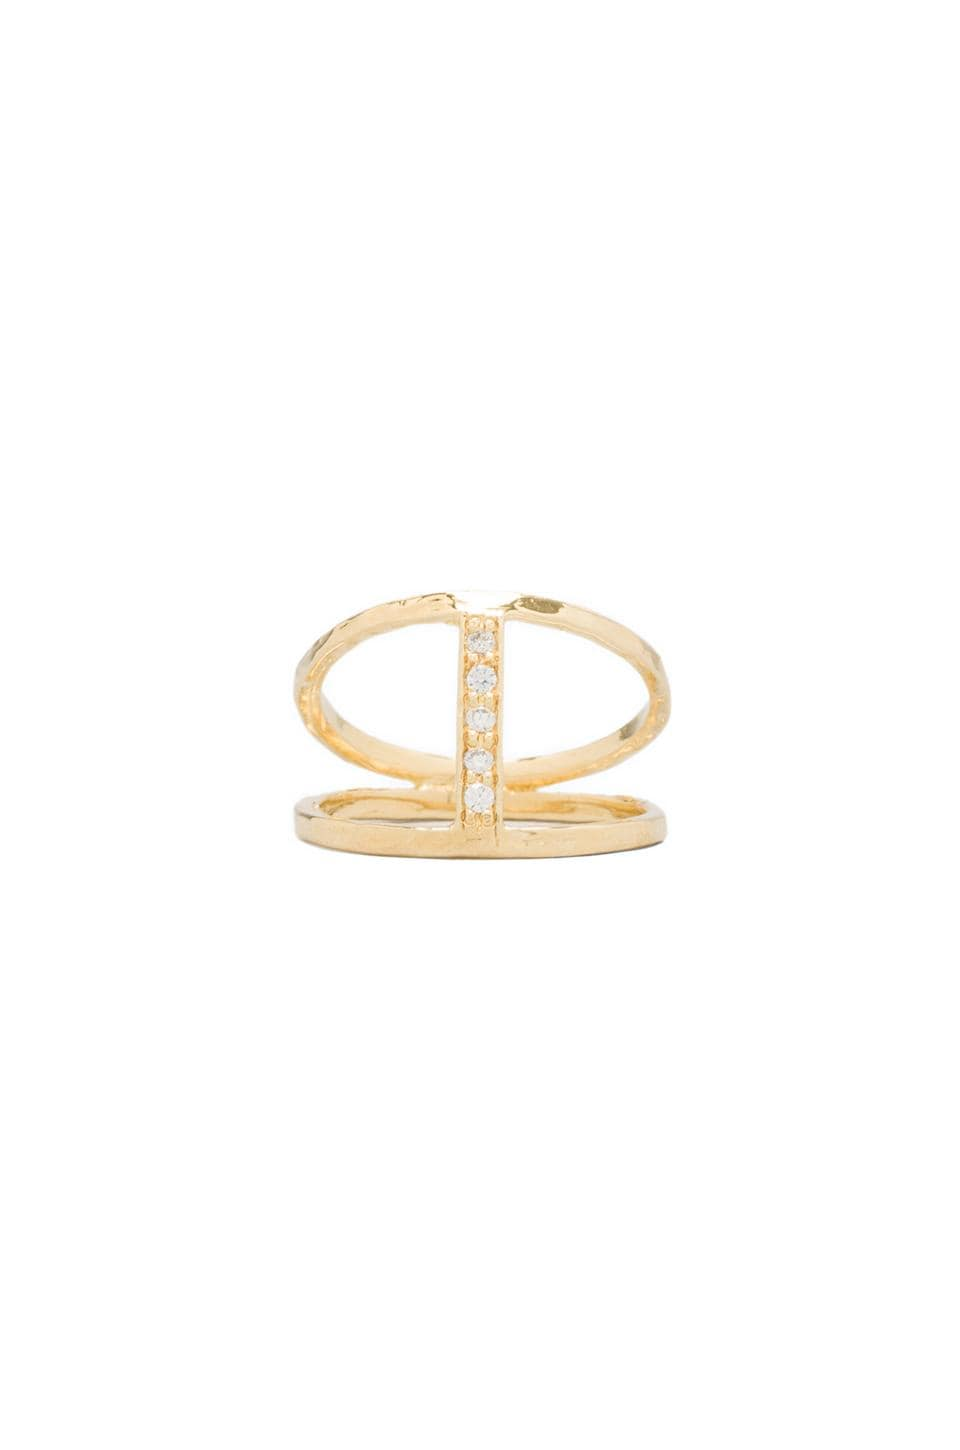 Jacquie Aiche CZ Center H Ring in Gold Vermeil